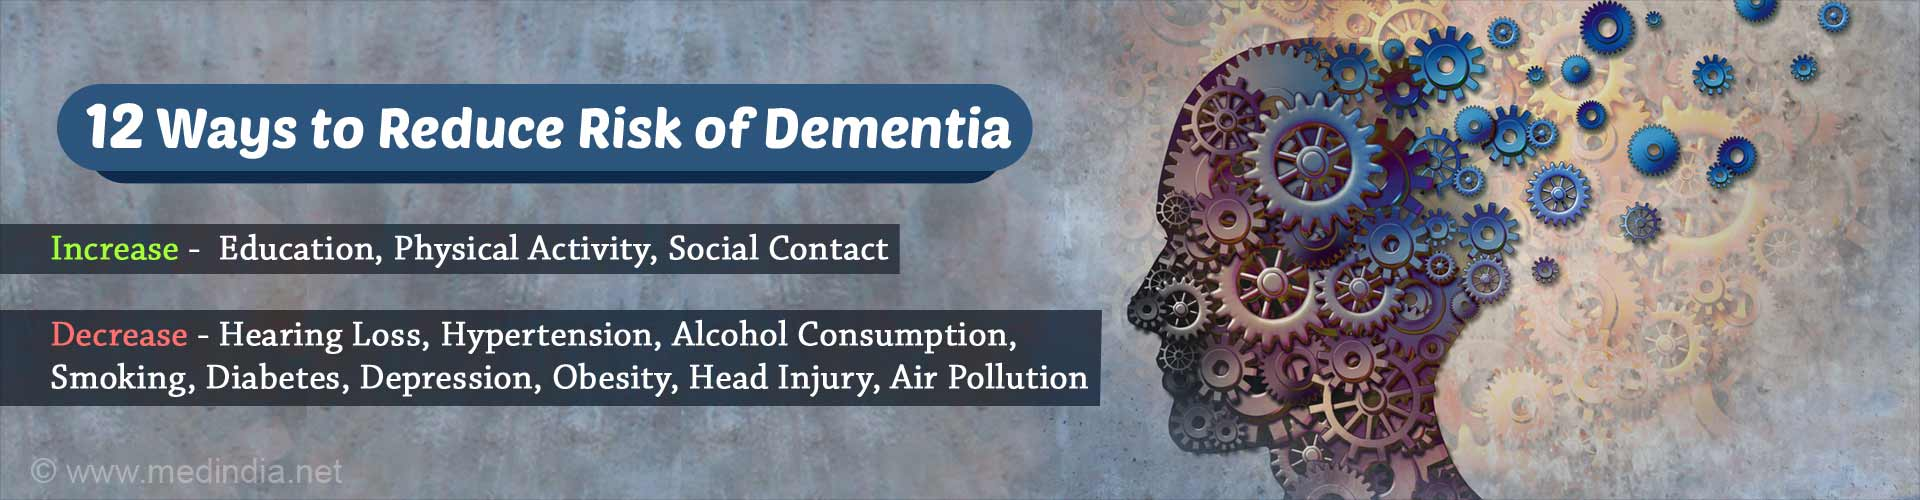 Top 12 Ways to Reduce Risk of Dementia